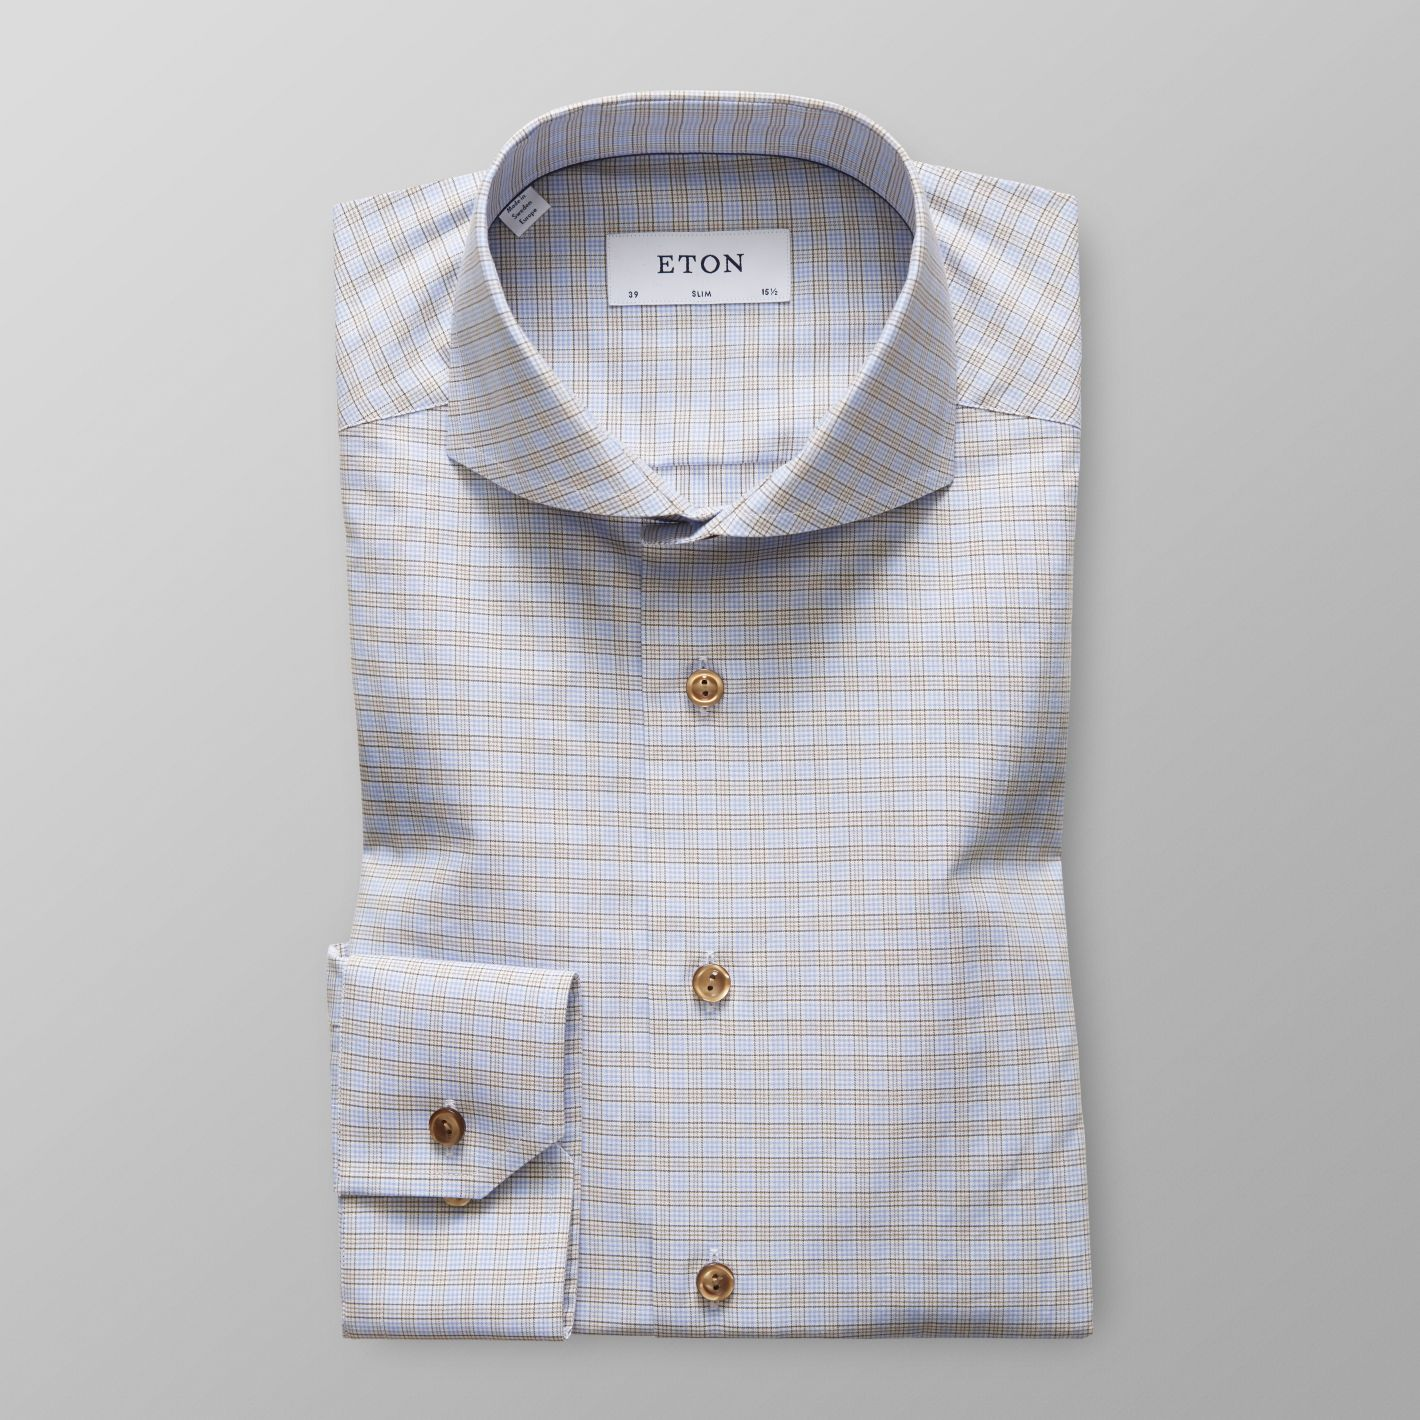 f9e4c9af80 Men's Sky Blue & Brown Checked Twill Shirt | Slim fit | Eton Shirts US